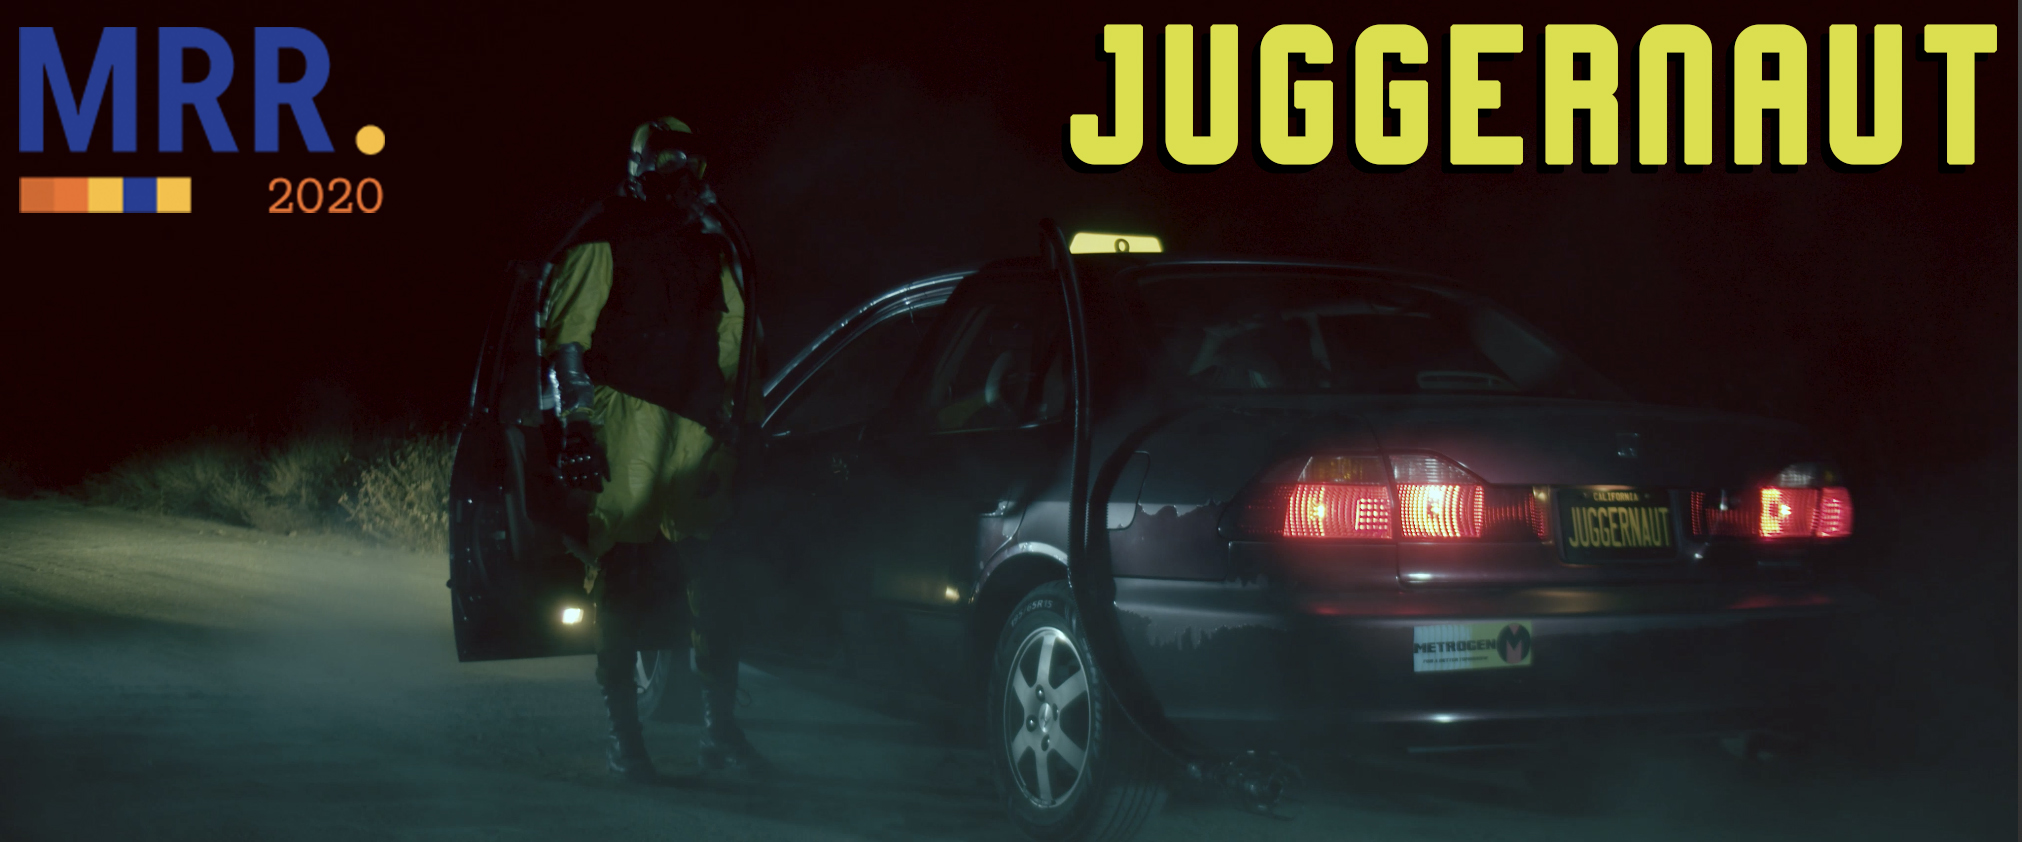 Juggernaut - MY RODE REEL 2020